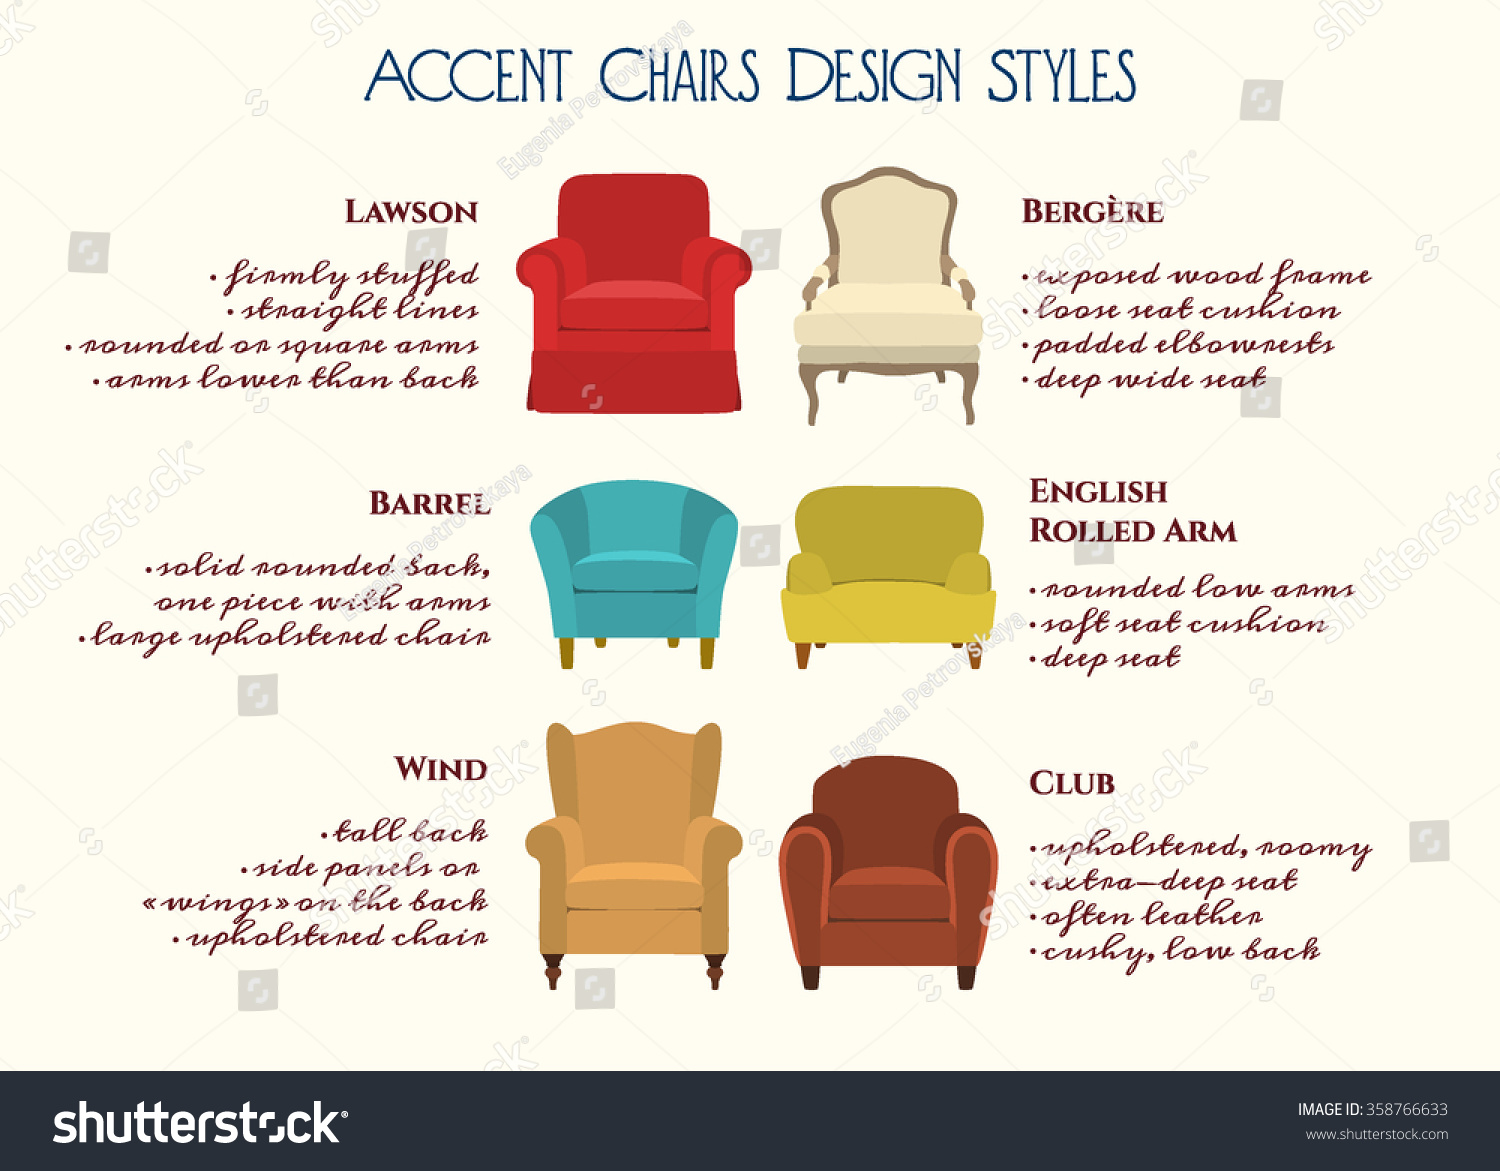 Styles Of Chairs Vector Infographic Accent Chairs Design Styles Stock